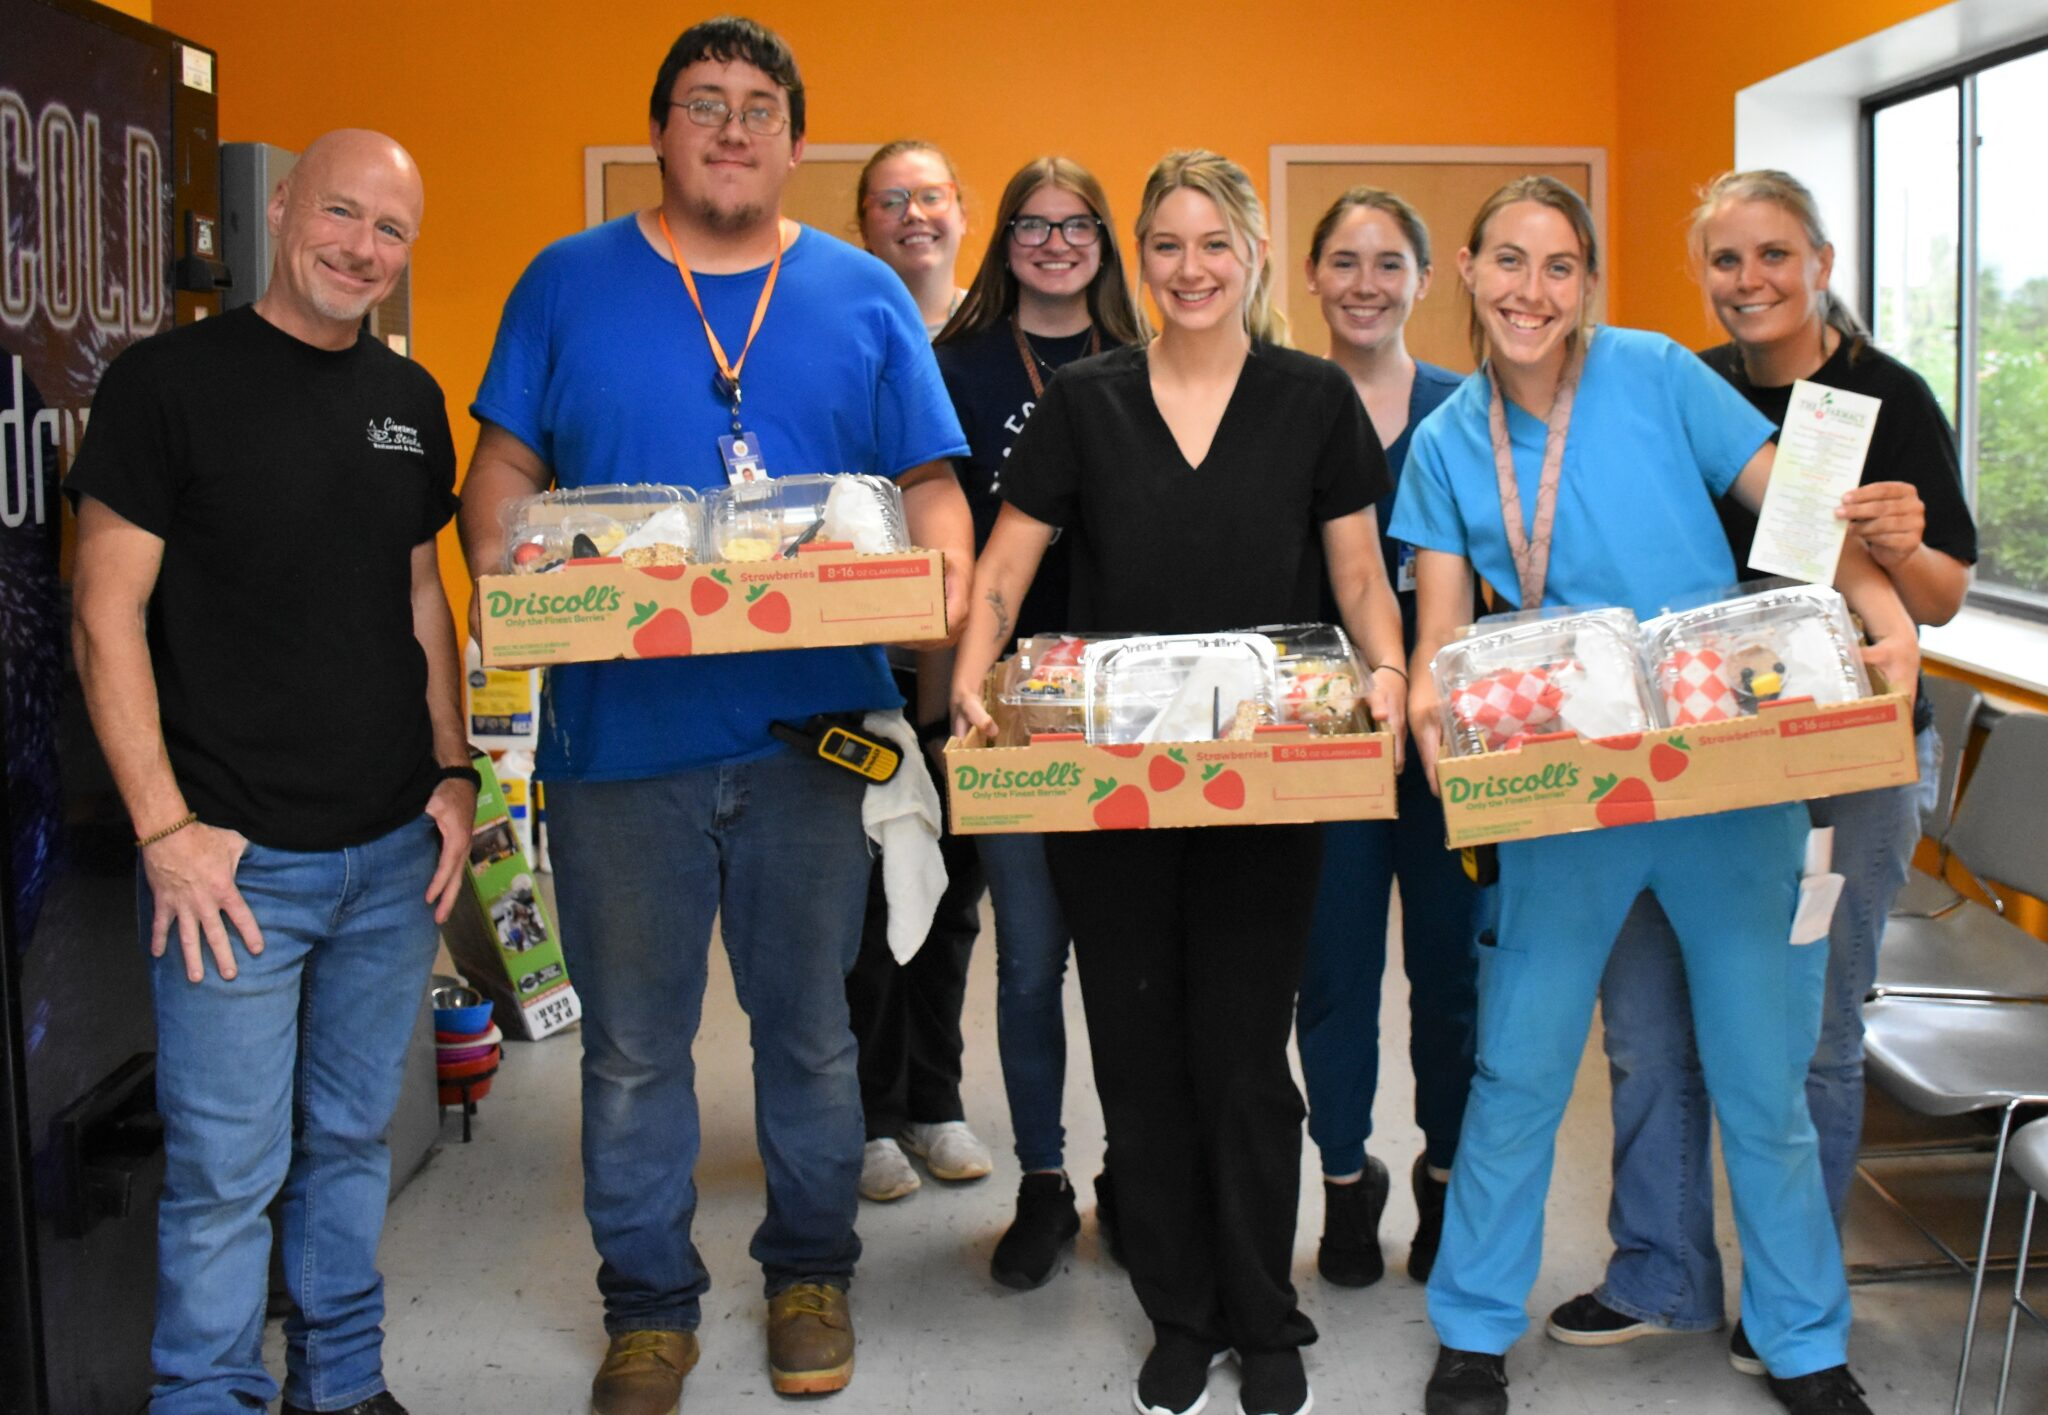 On June 25, 2021, Dillon's Cinnamon Sticks restaurant prepared and delivered meals for each of the 17 staff members at Citrus County Animal Services (CCAS).